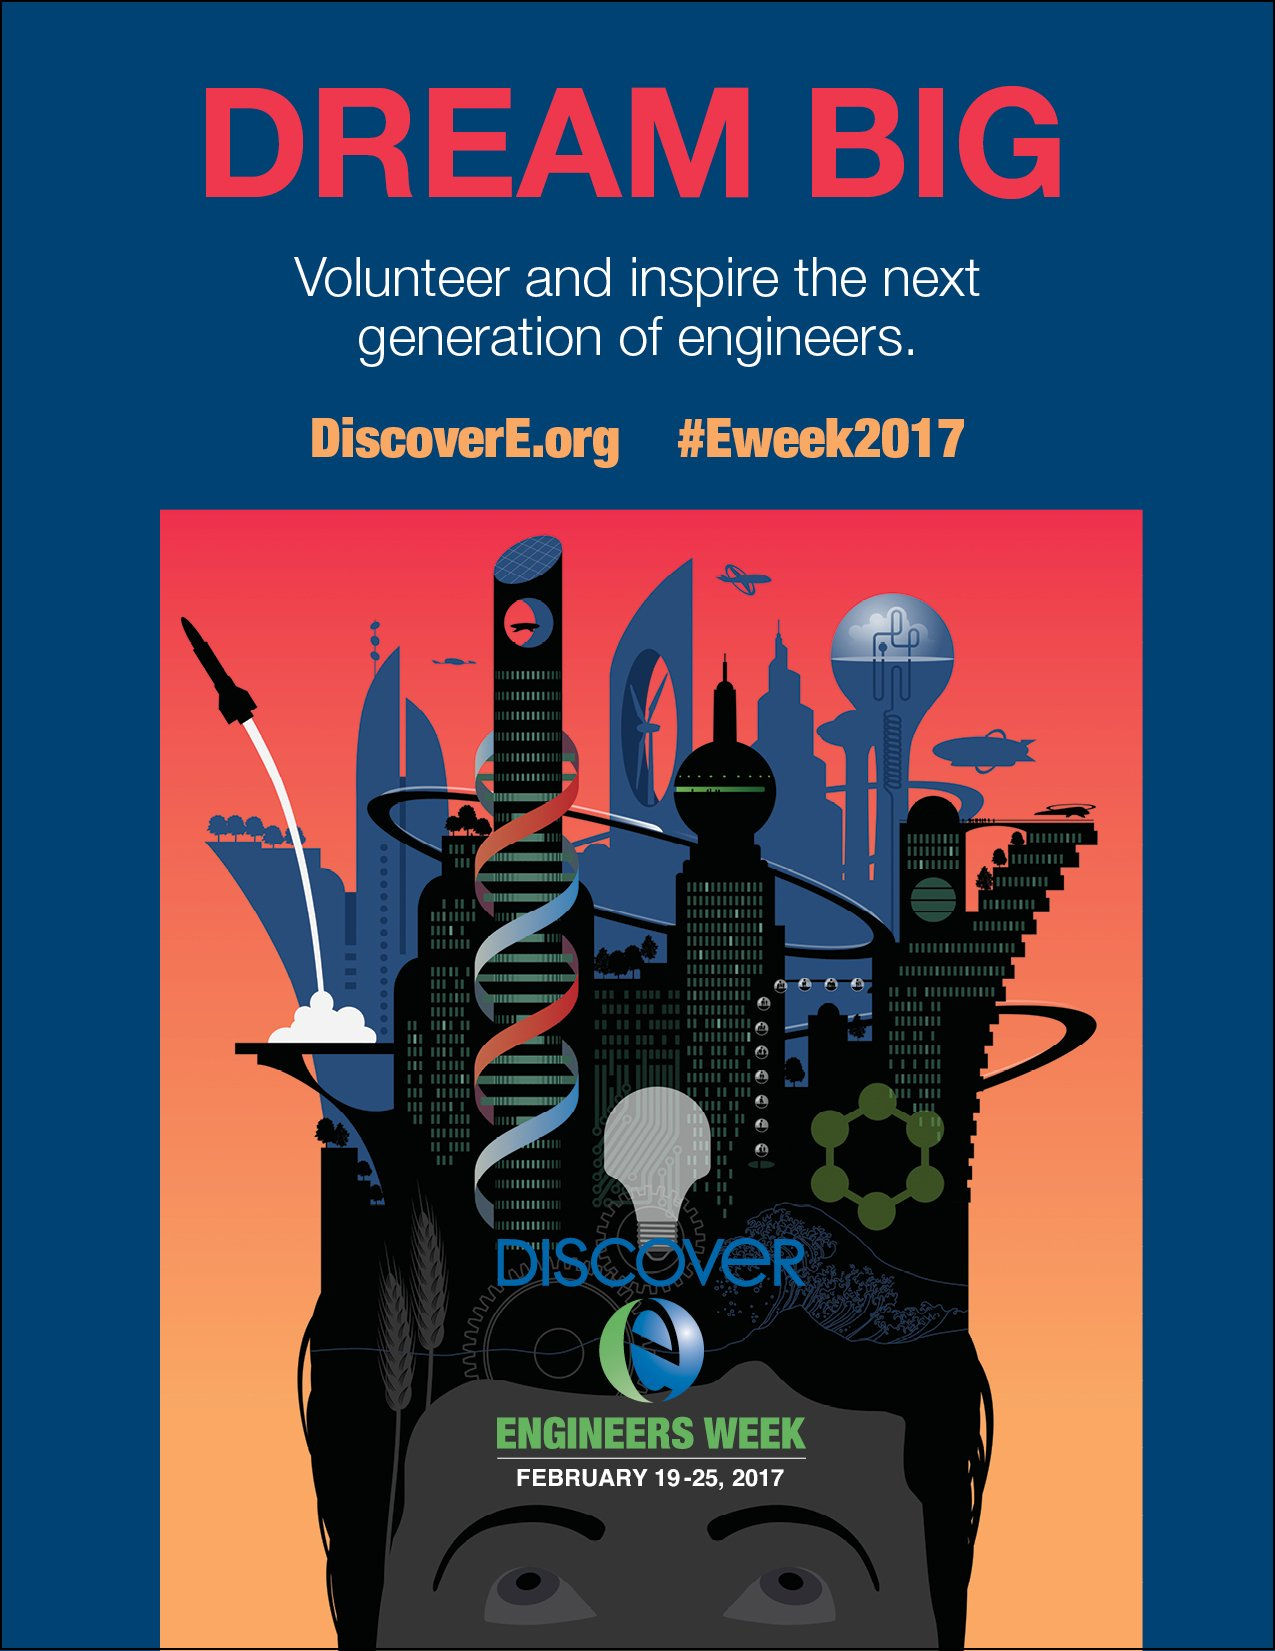 It's #EngineersWeek! Visit us every day to learn about engineers who changed your life. #eweek2017 https://t.co/xpbjAkSQmt